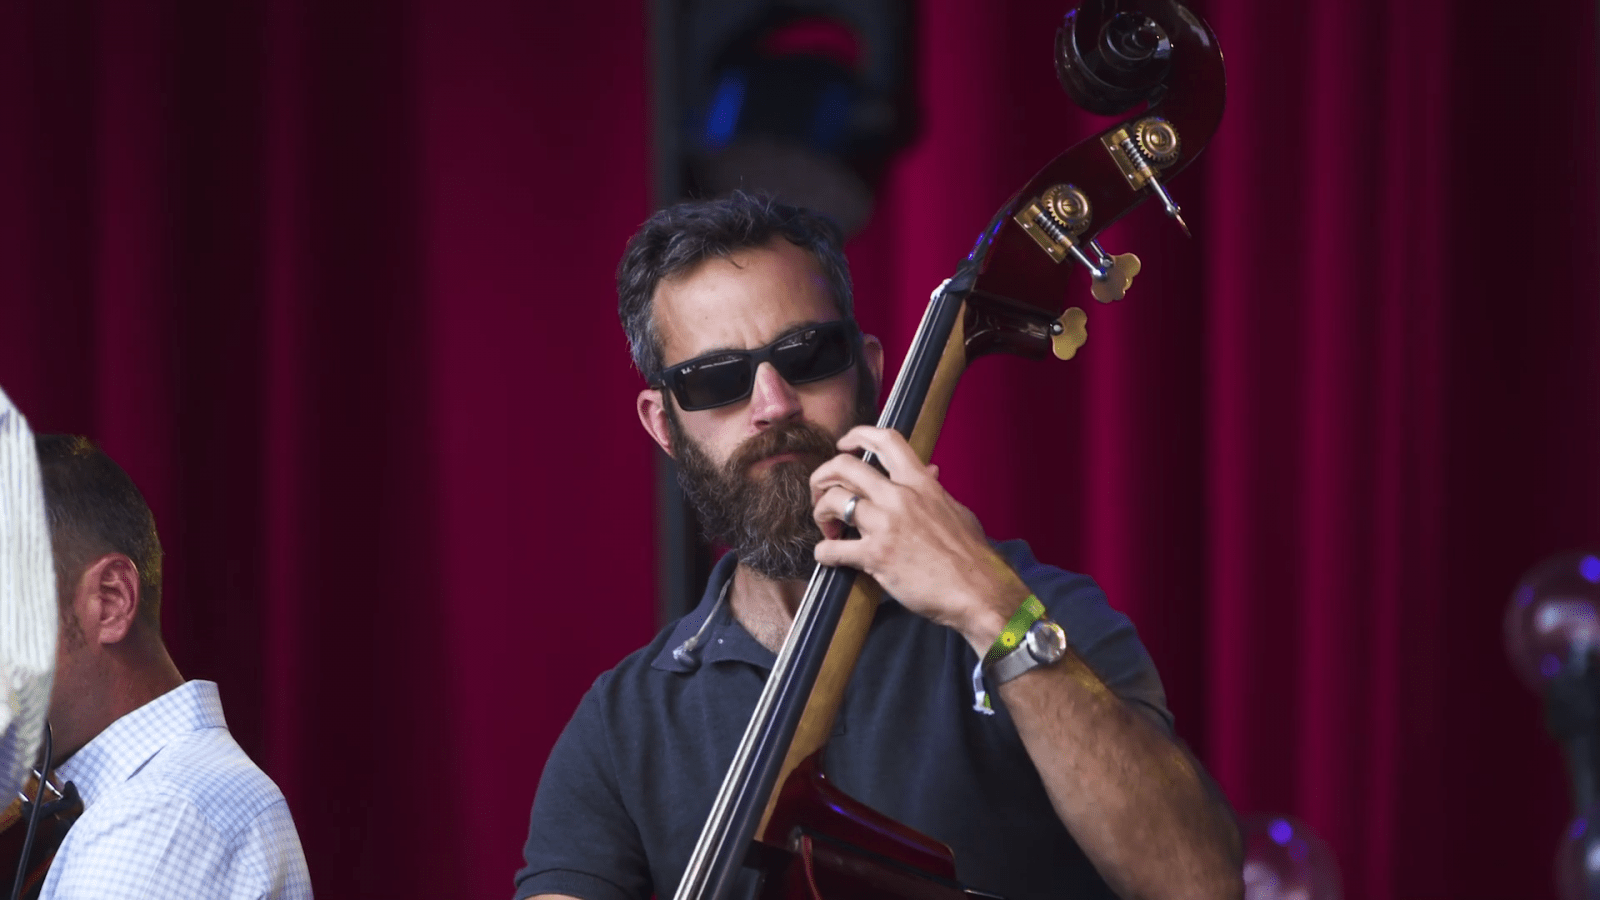 Man in sunglasses performs on an upright bass